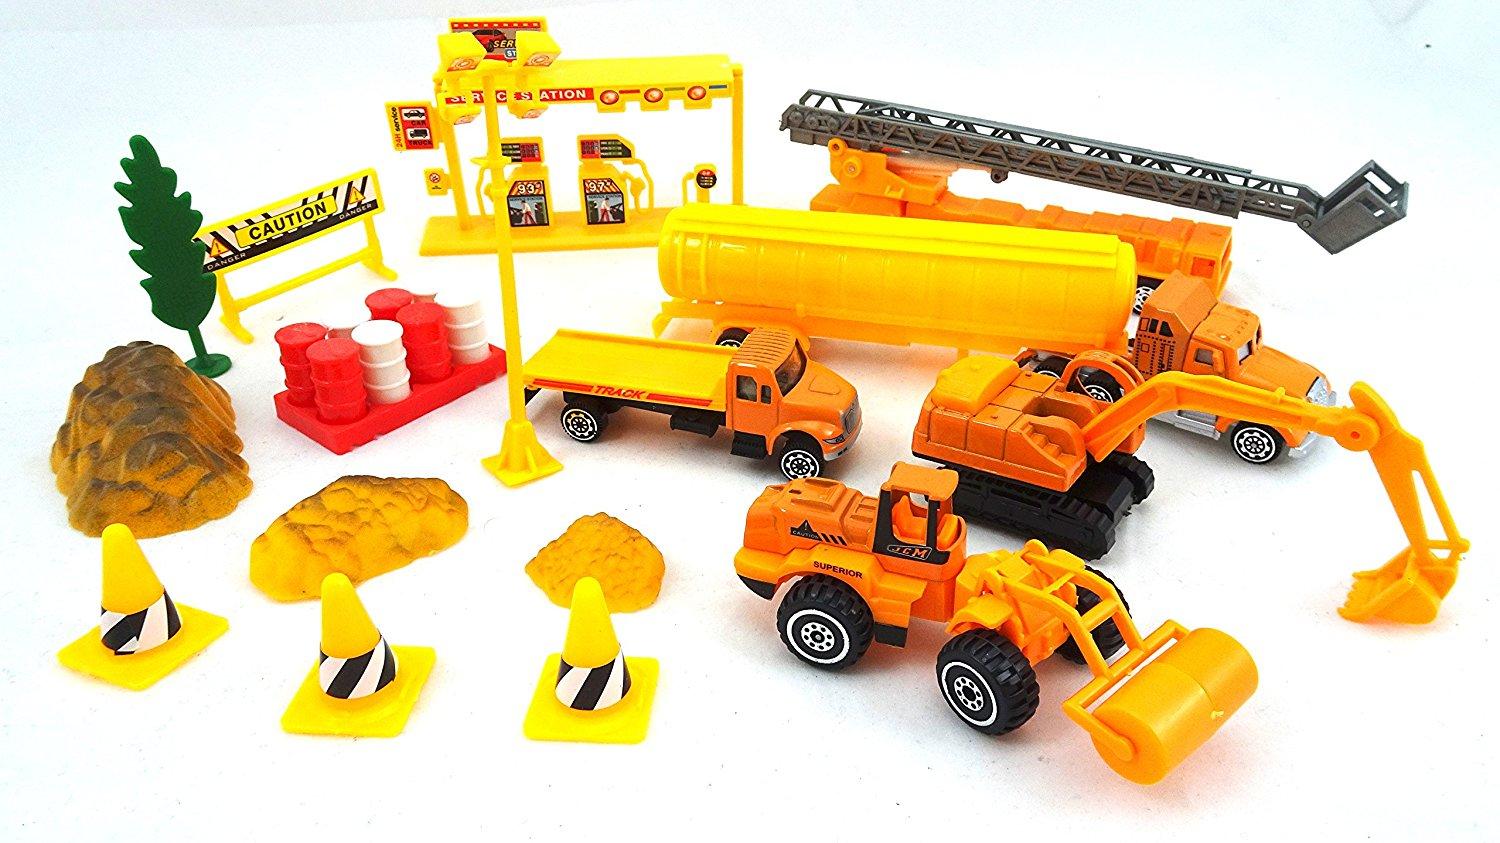 a55429dfa Buy Die Cast Construction Crew Play Set - Includes Toy Trucks ...